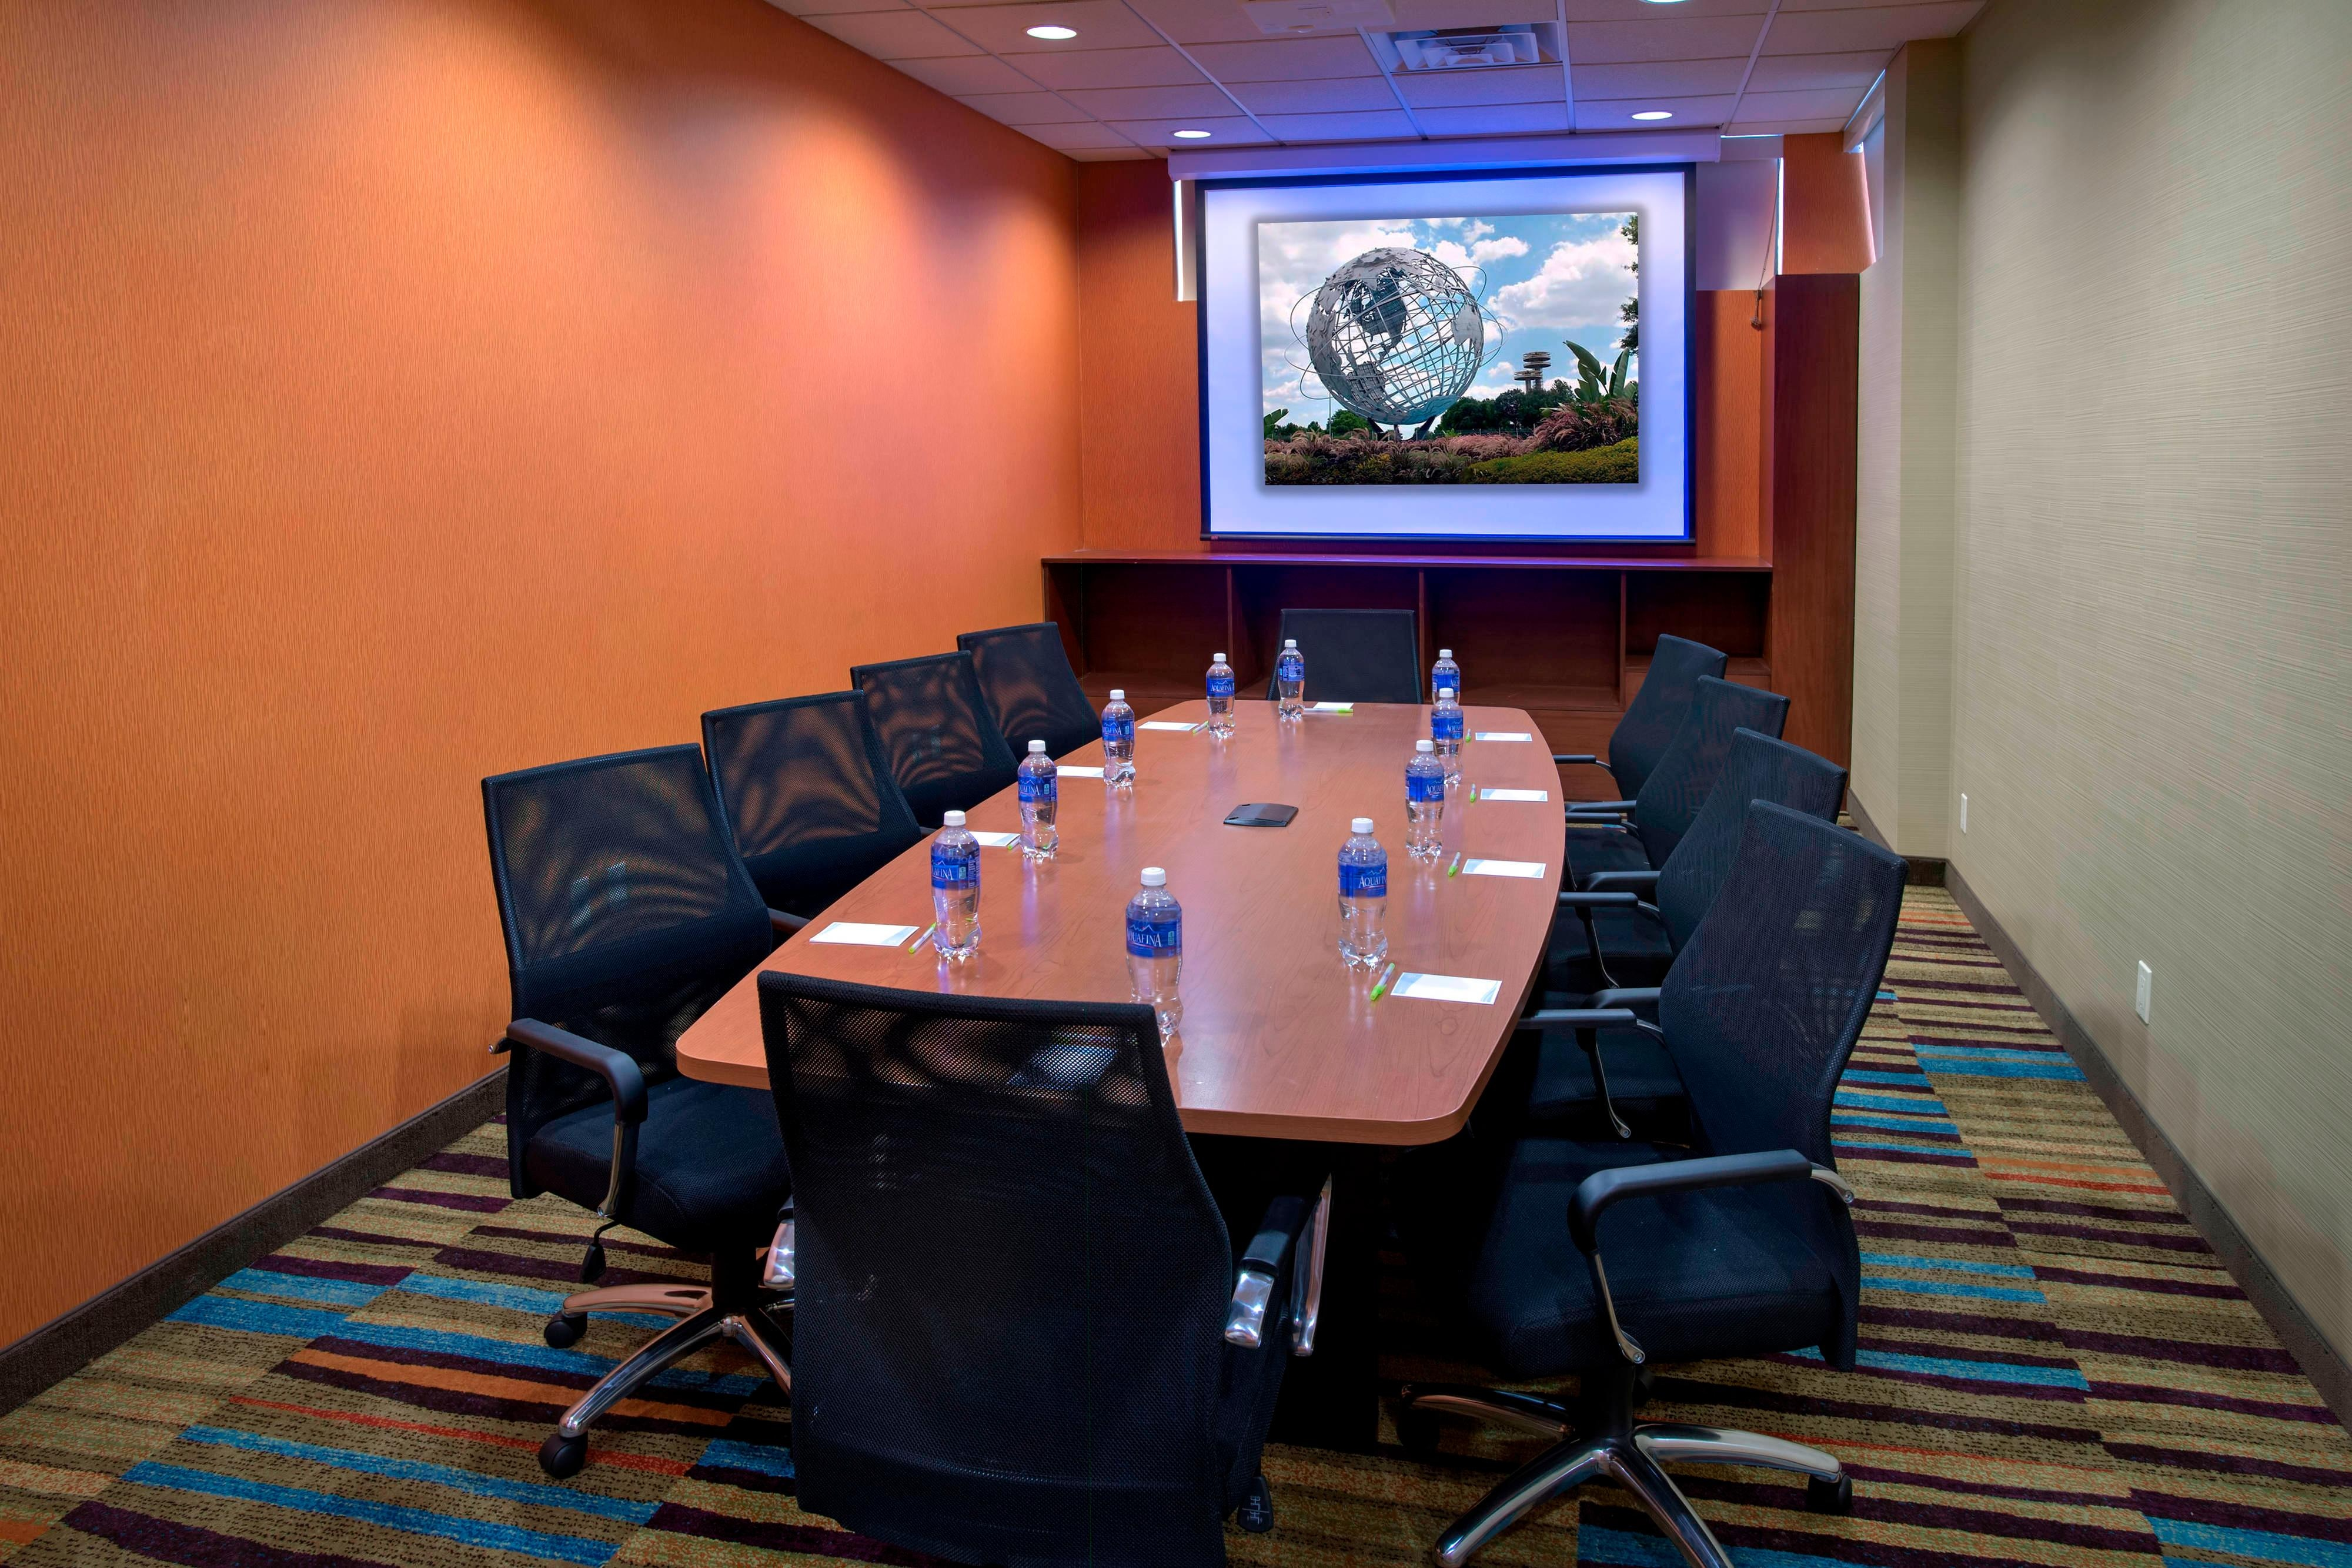 Meeting Space near LaGuardia Airport